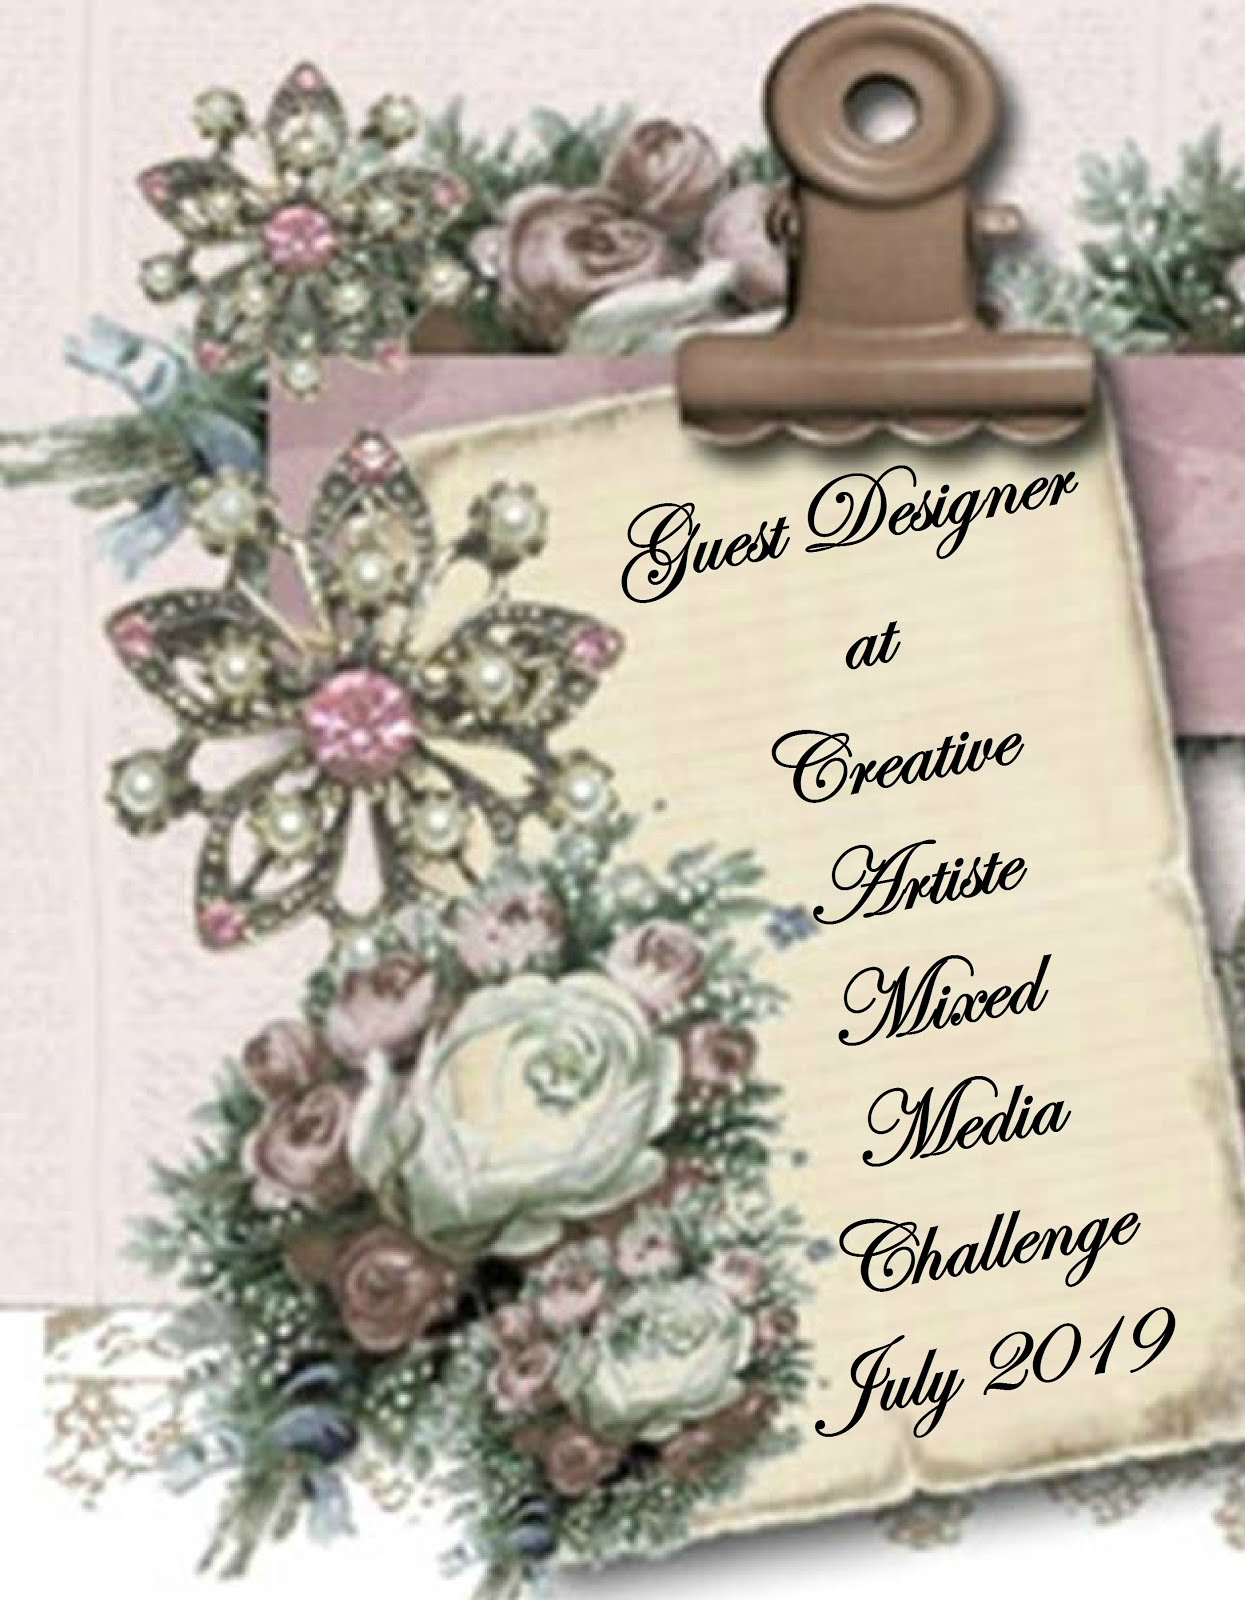 Creative Artiste Mixed Media Challenge